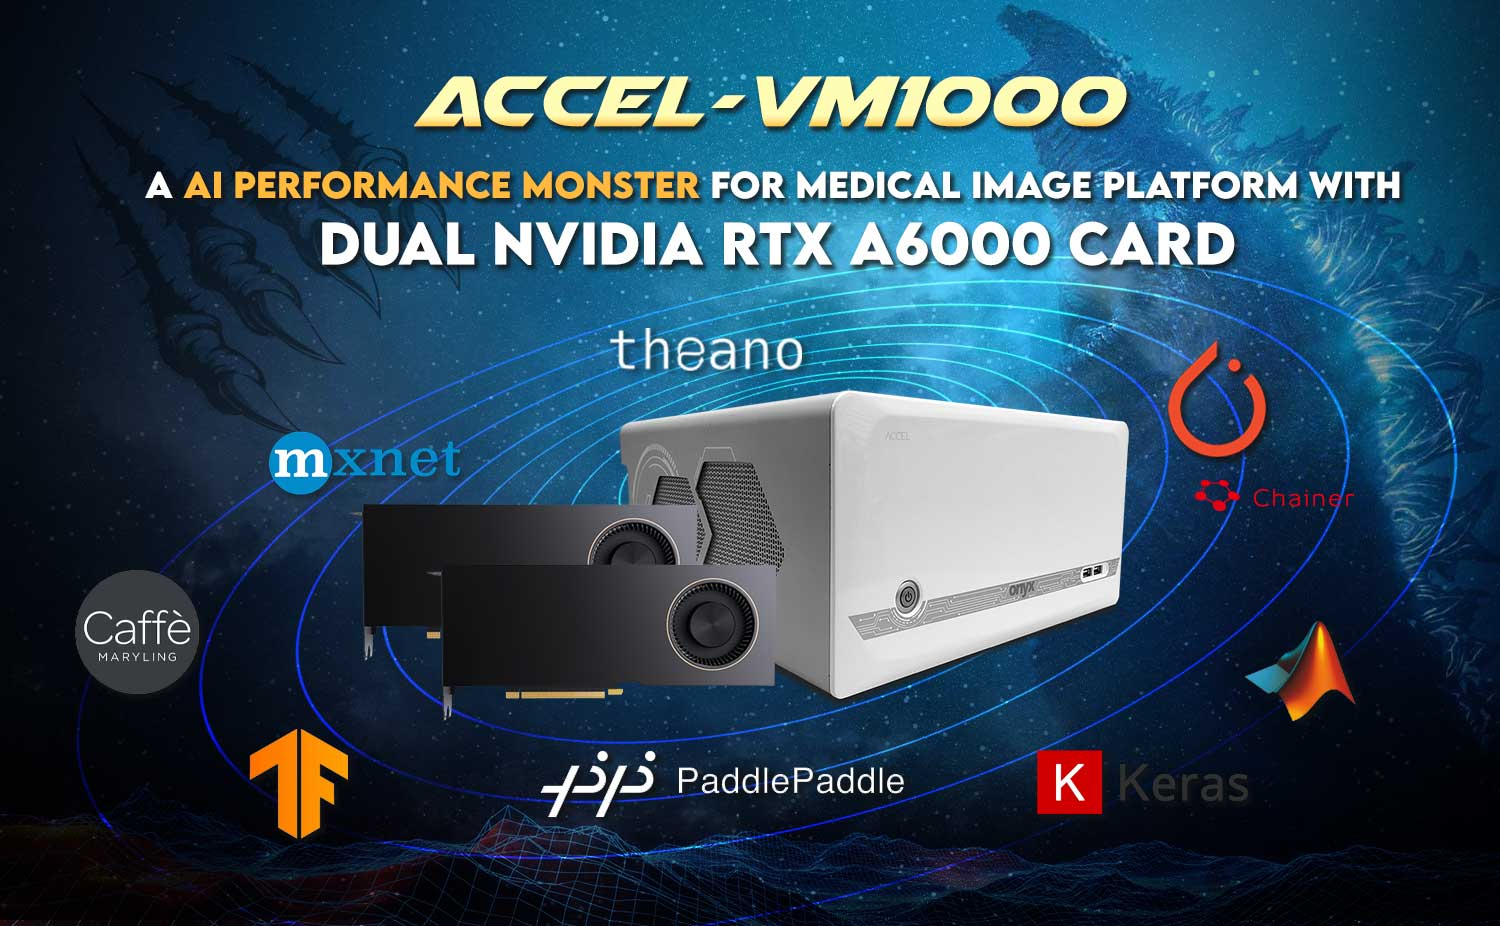 ACCEL-VM1000  a AI performance Monster for medical image platform with  DUAL Nvidia RTX A6000 CARD